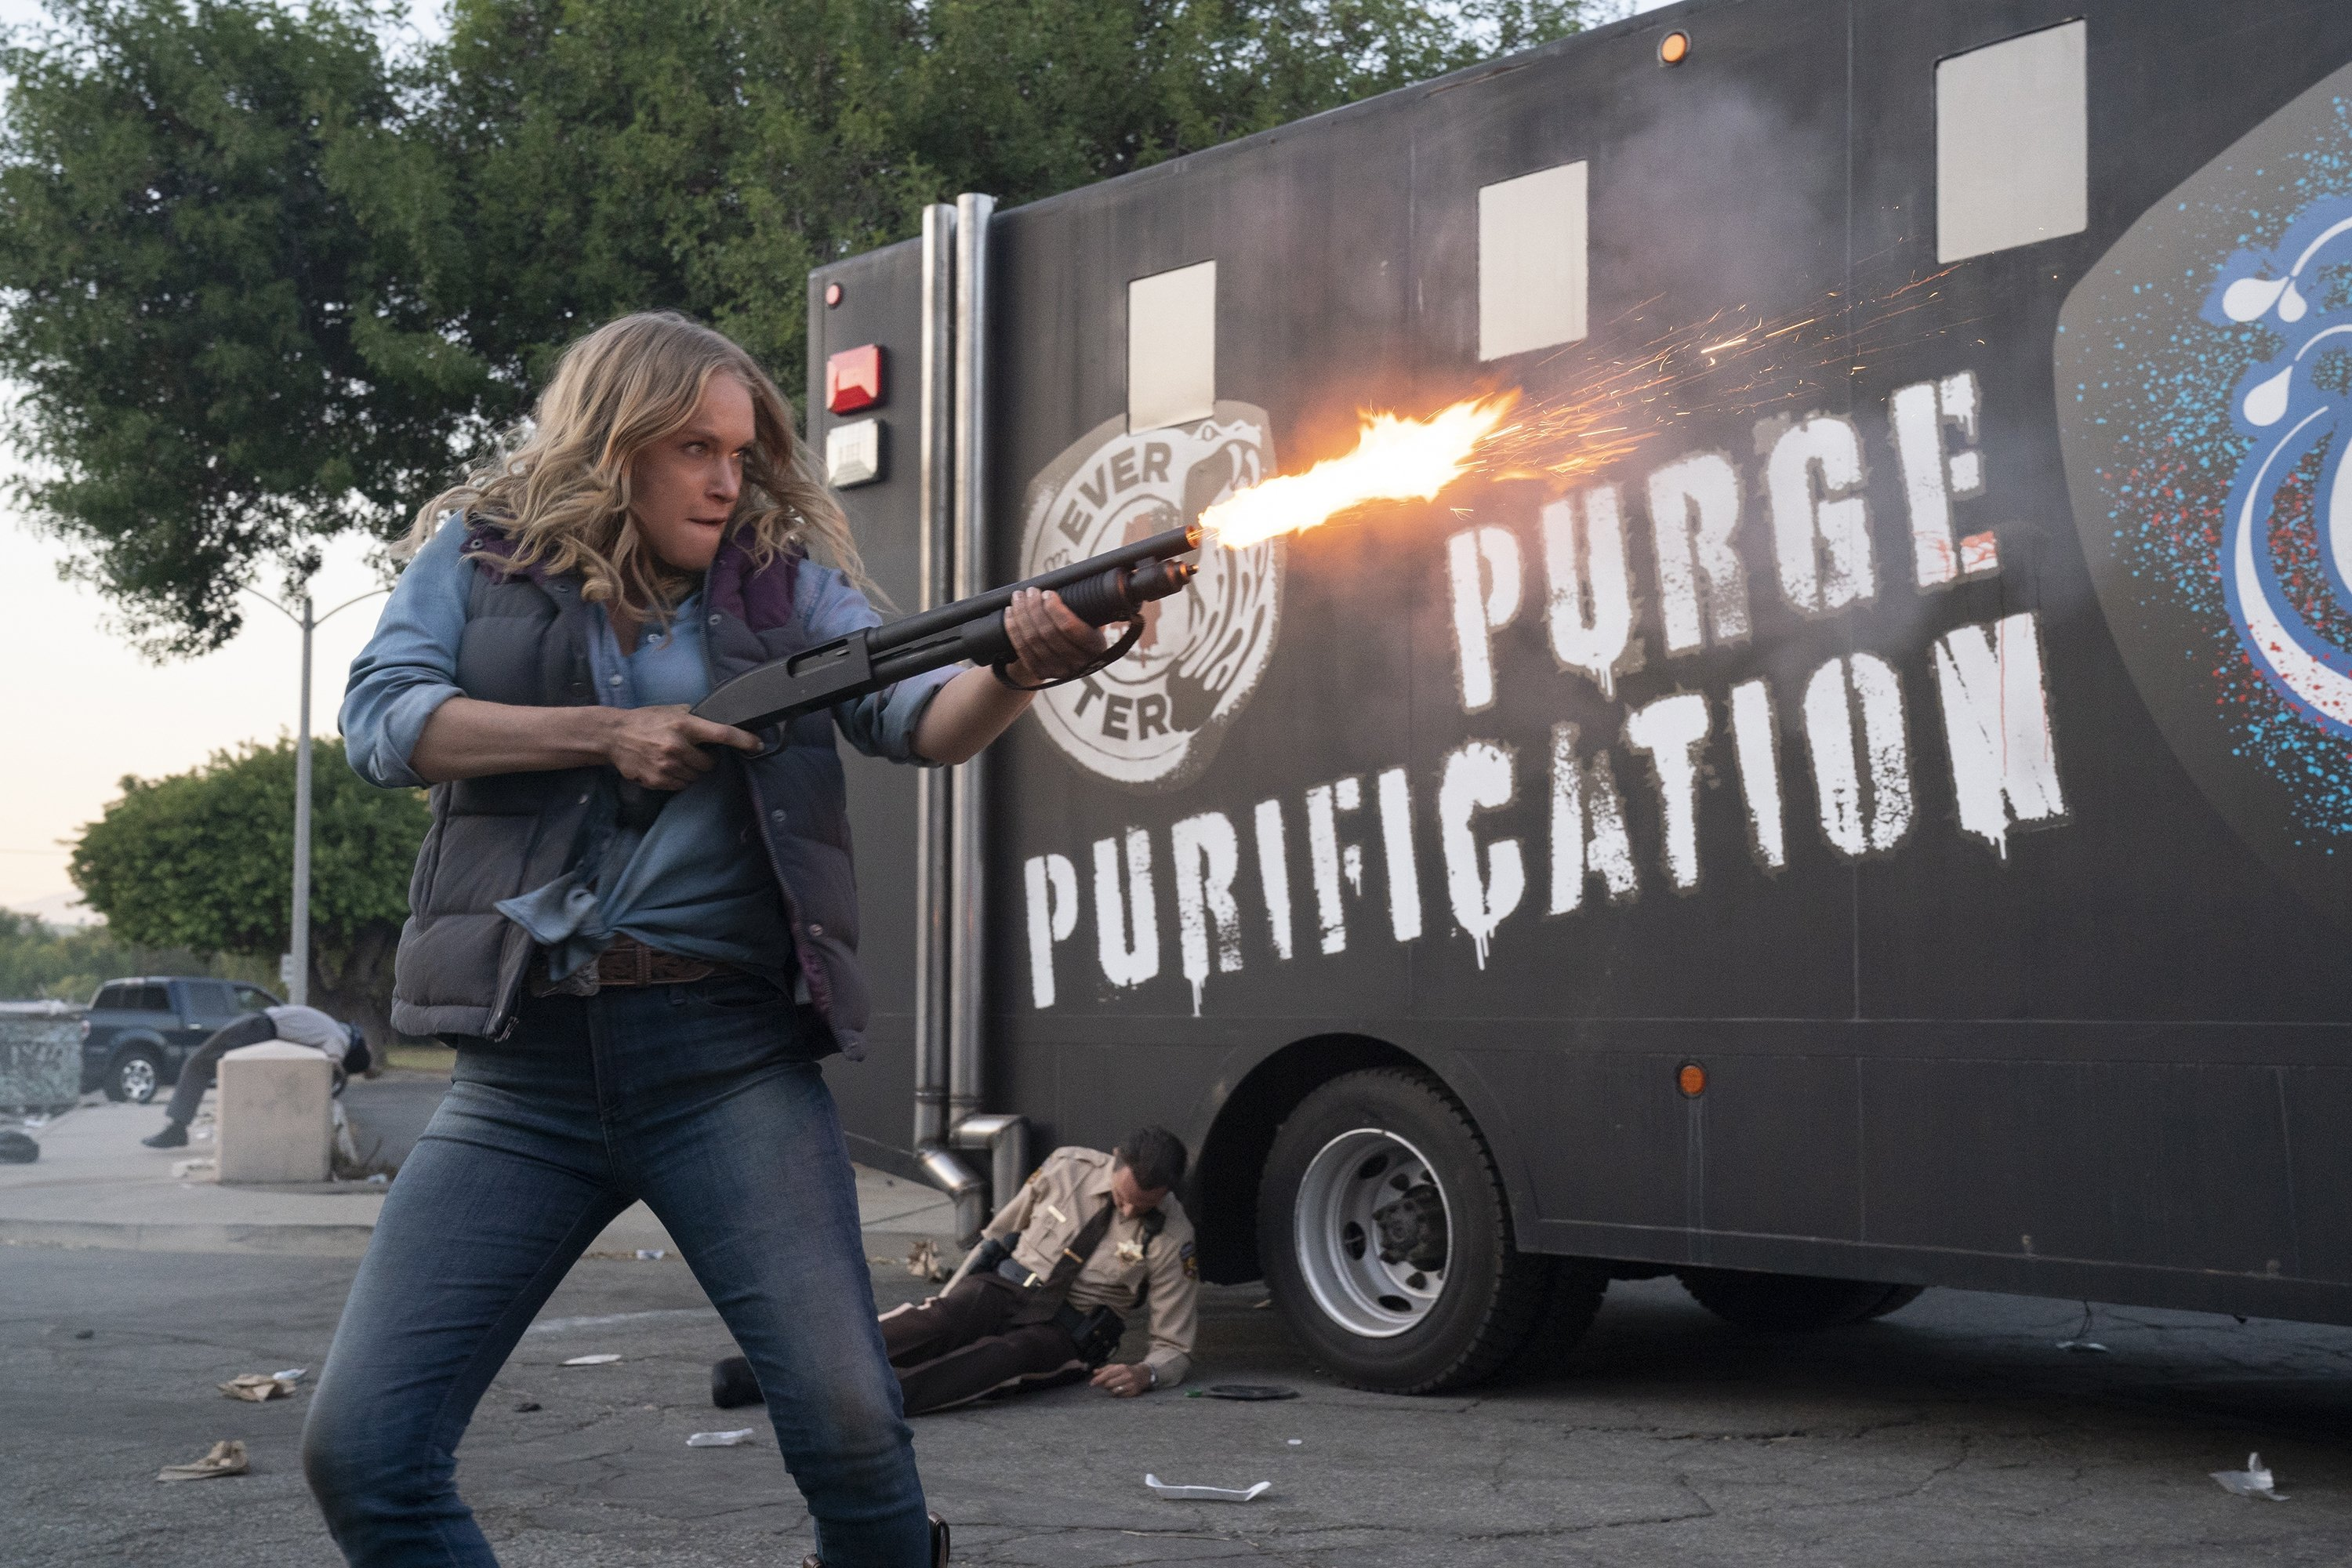 Leven Rambin fires a weapon in a scene from 'The Forever Purge,' directed by Everardo Valerio Gout. (Universal Pictures via AP)